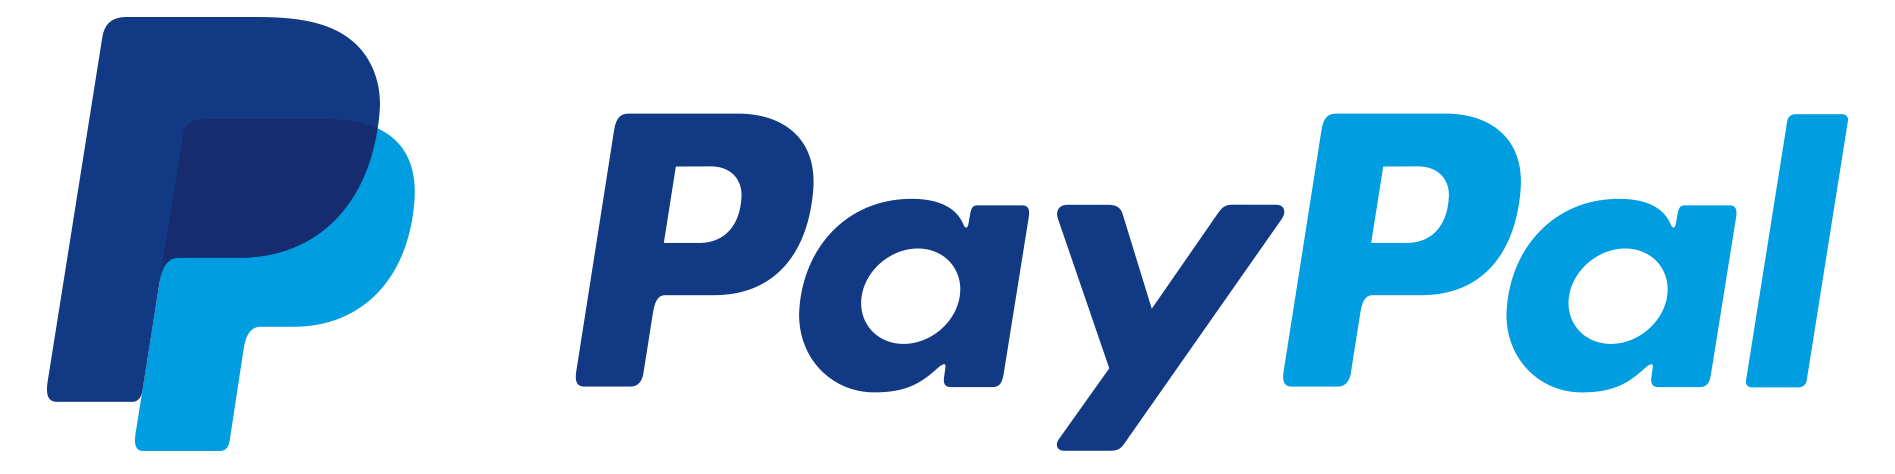 PayPal-expanded.png